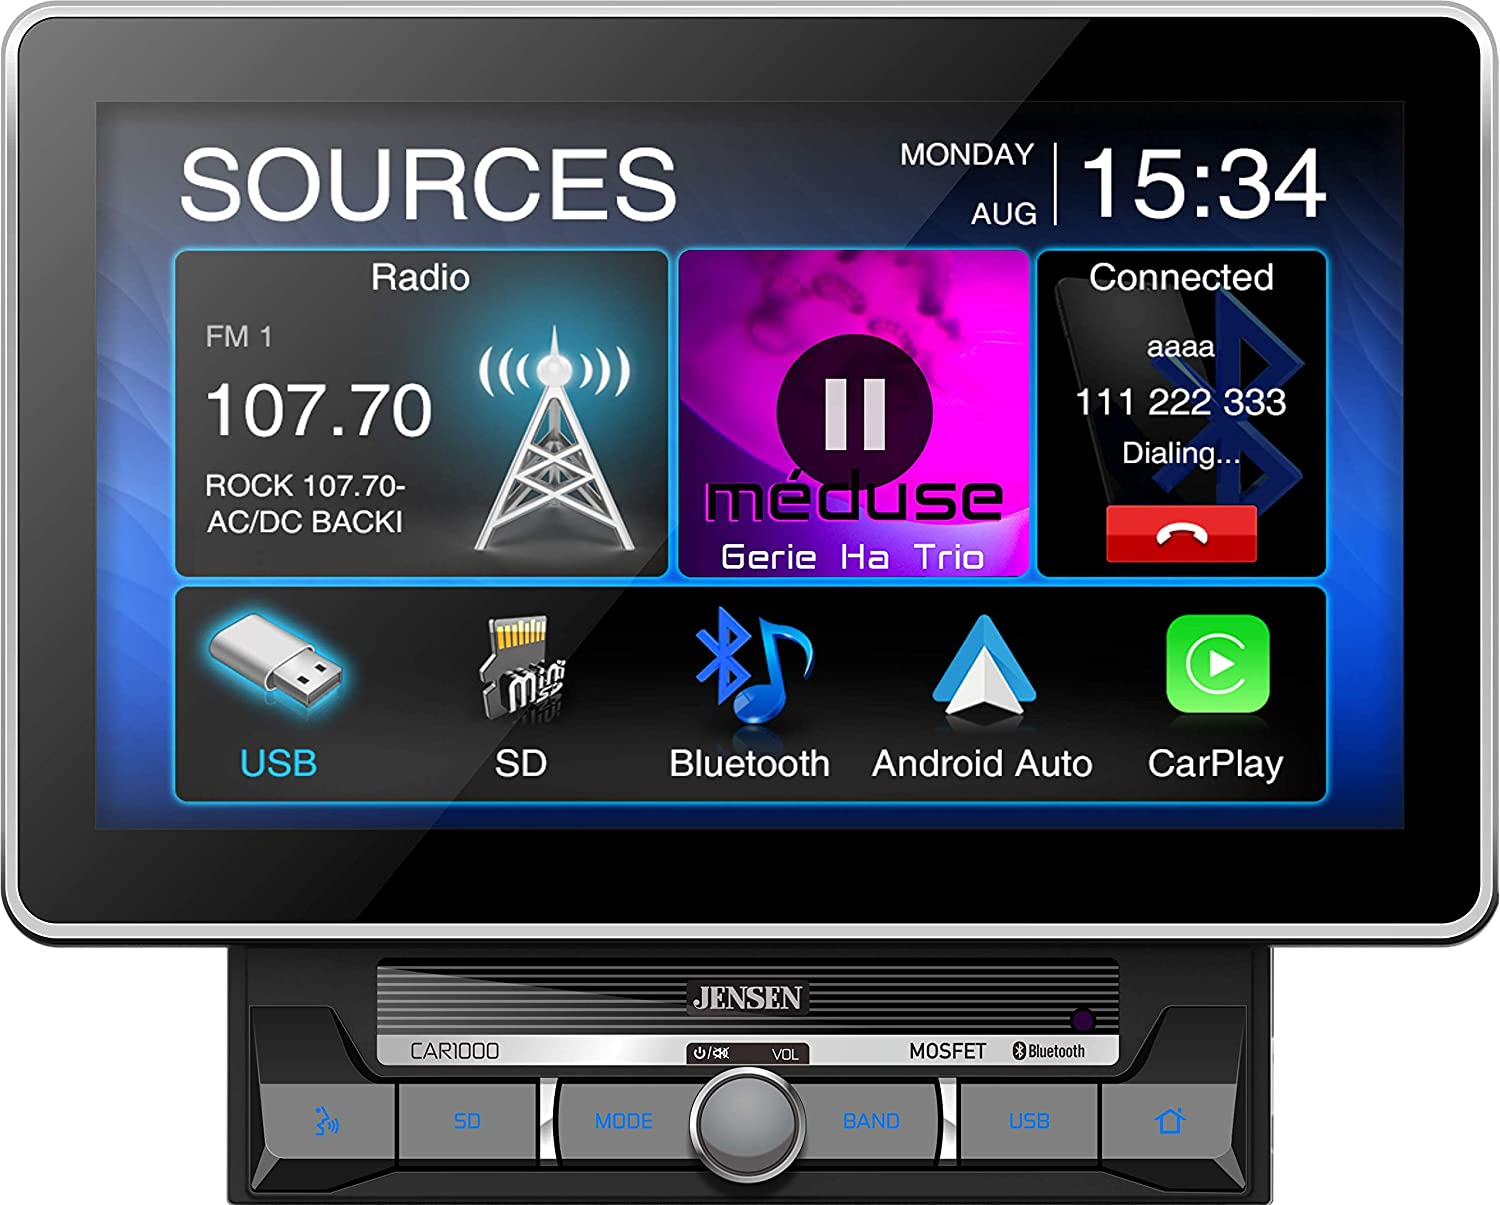 Jensen CAR1000 10.1 Extra Large Touchscreen Media Receiver with Apple CarPlay and Android Auto l Built-in Bluetooth with A2DP Music Streaming and Phonebook Support